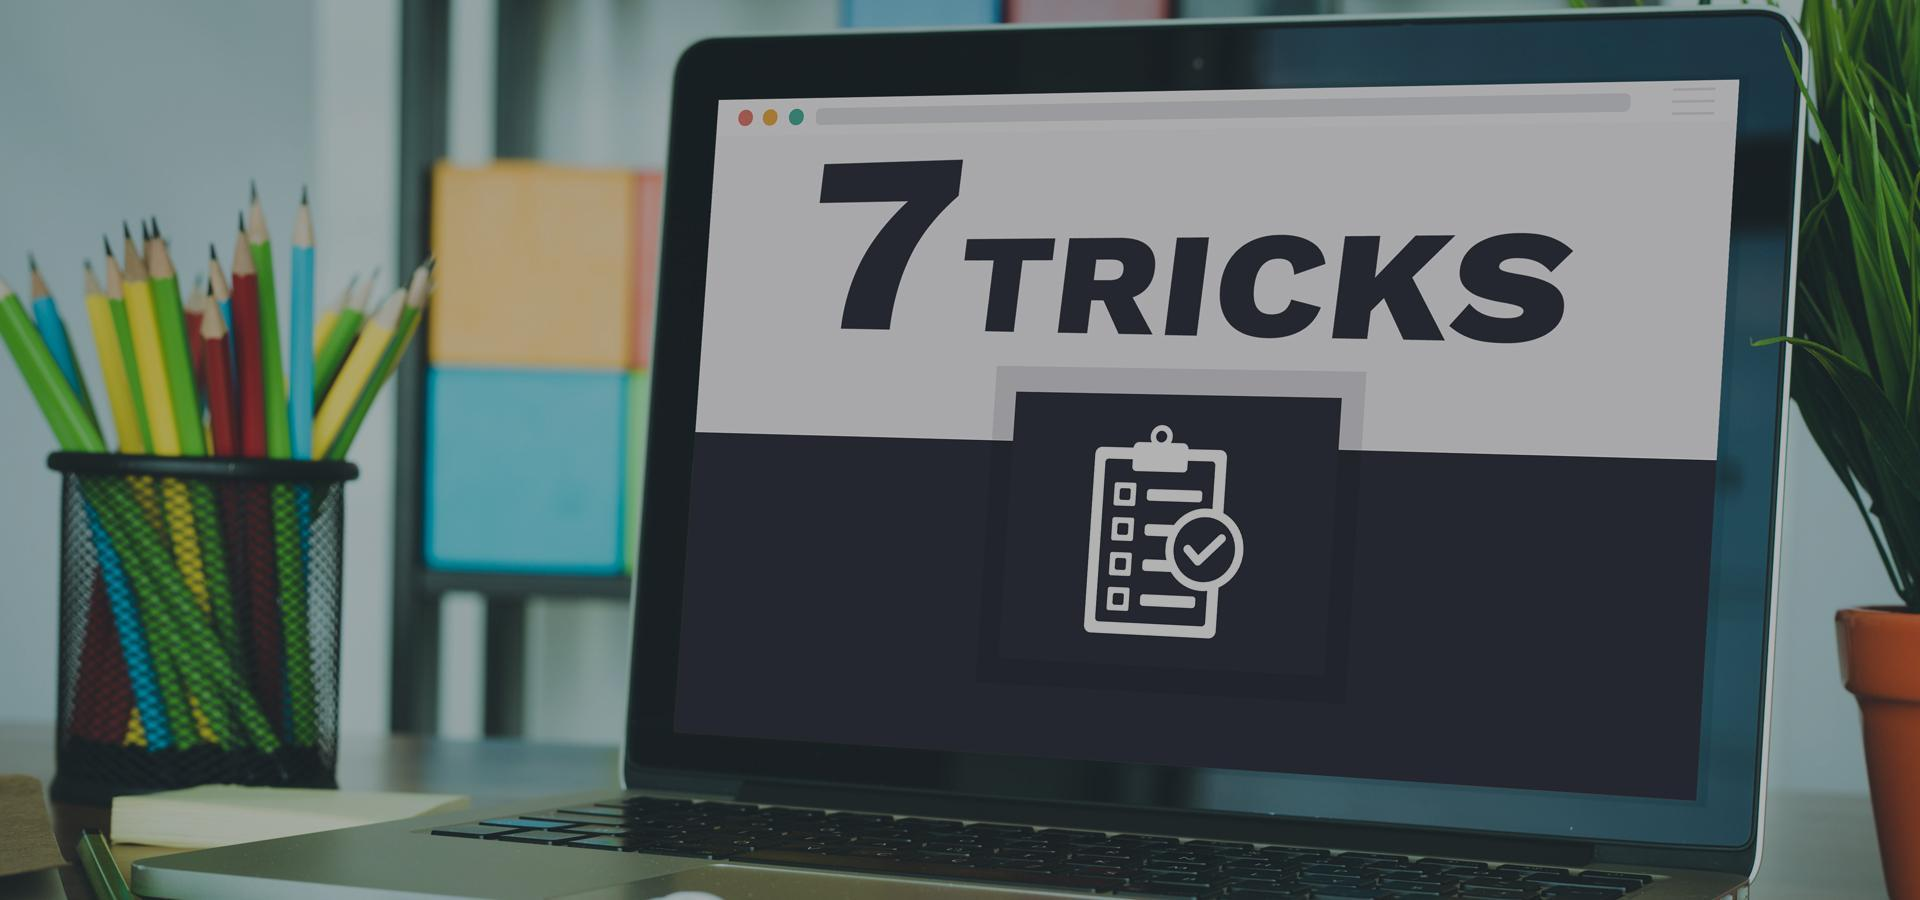 Get the Most out of JExcel with These 7 Tricks